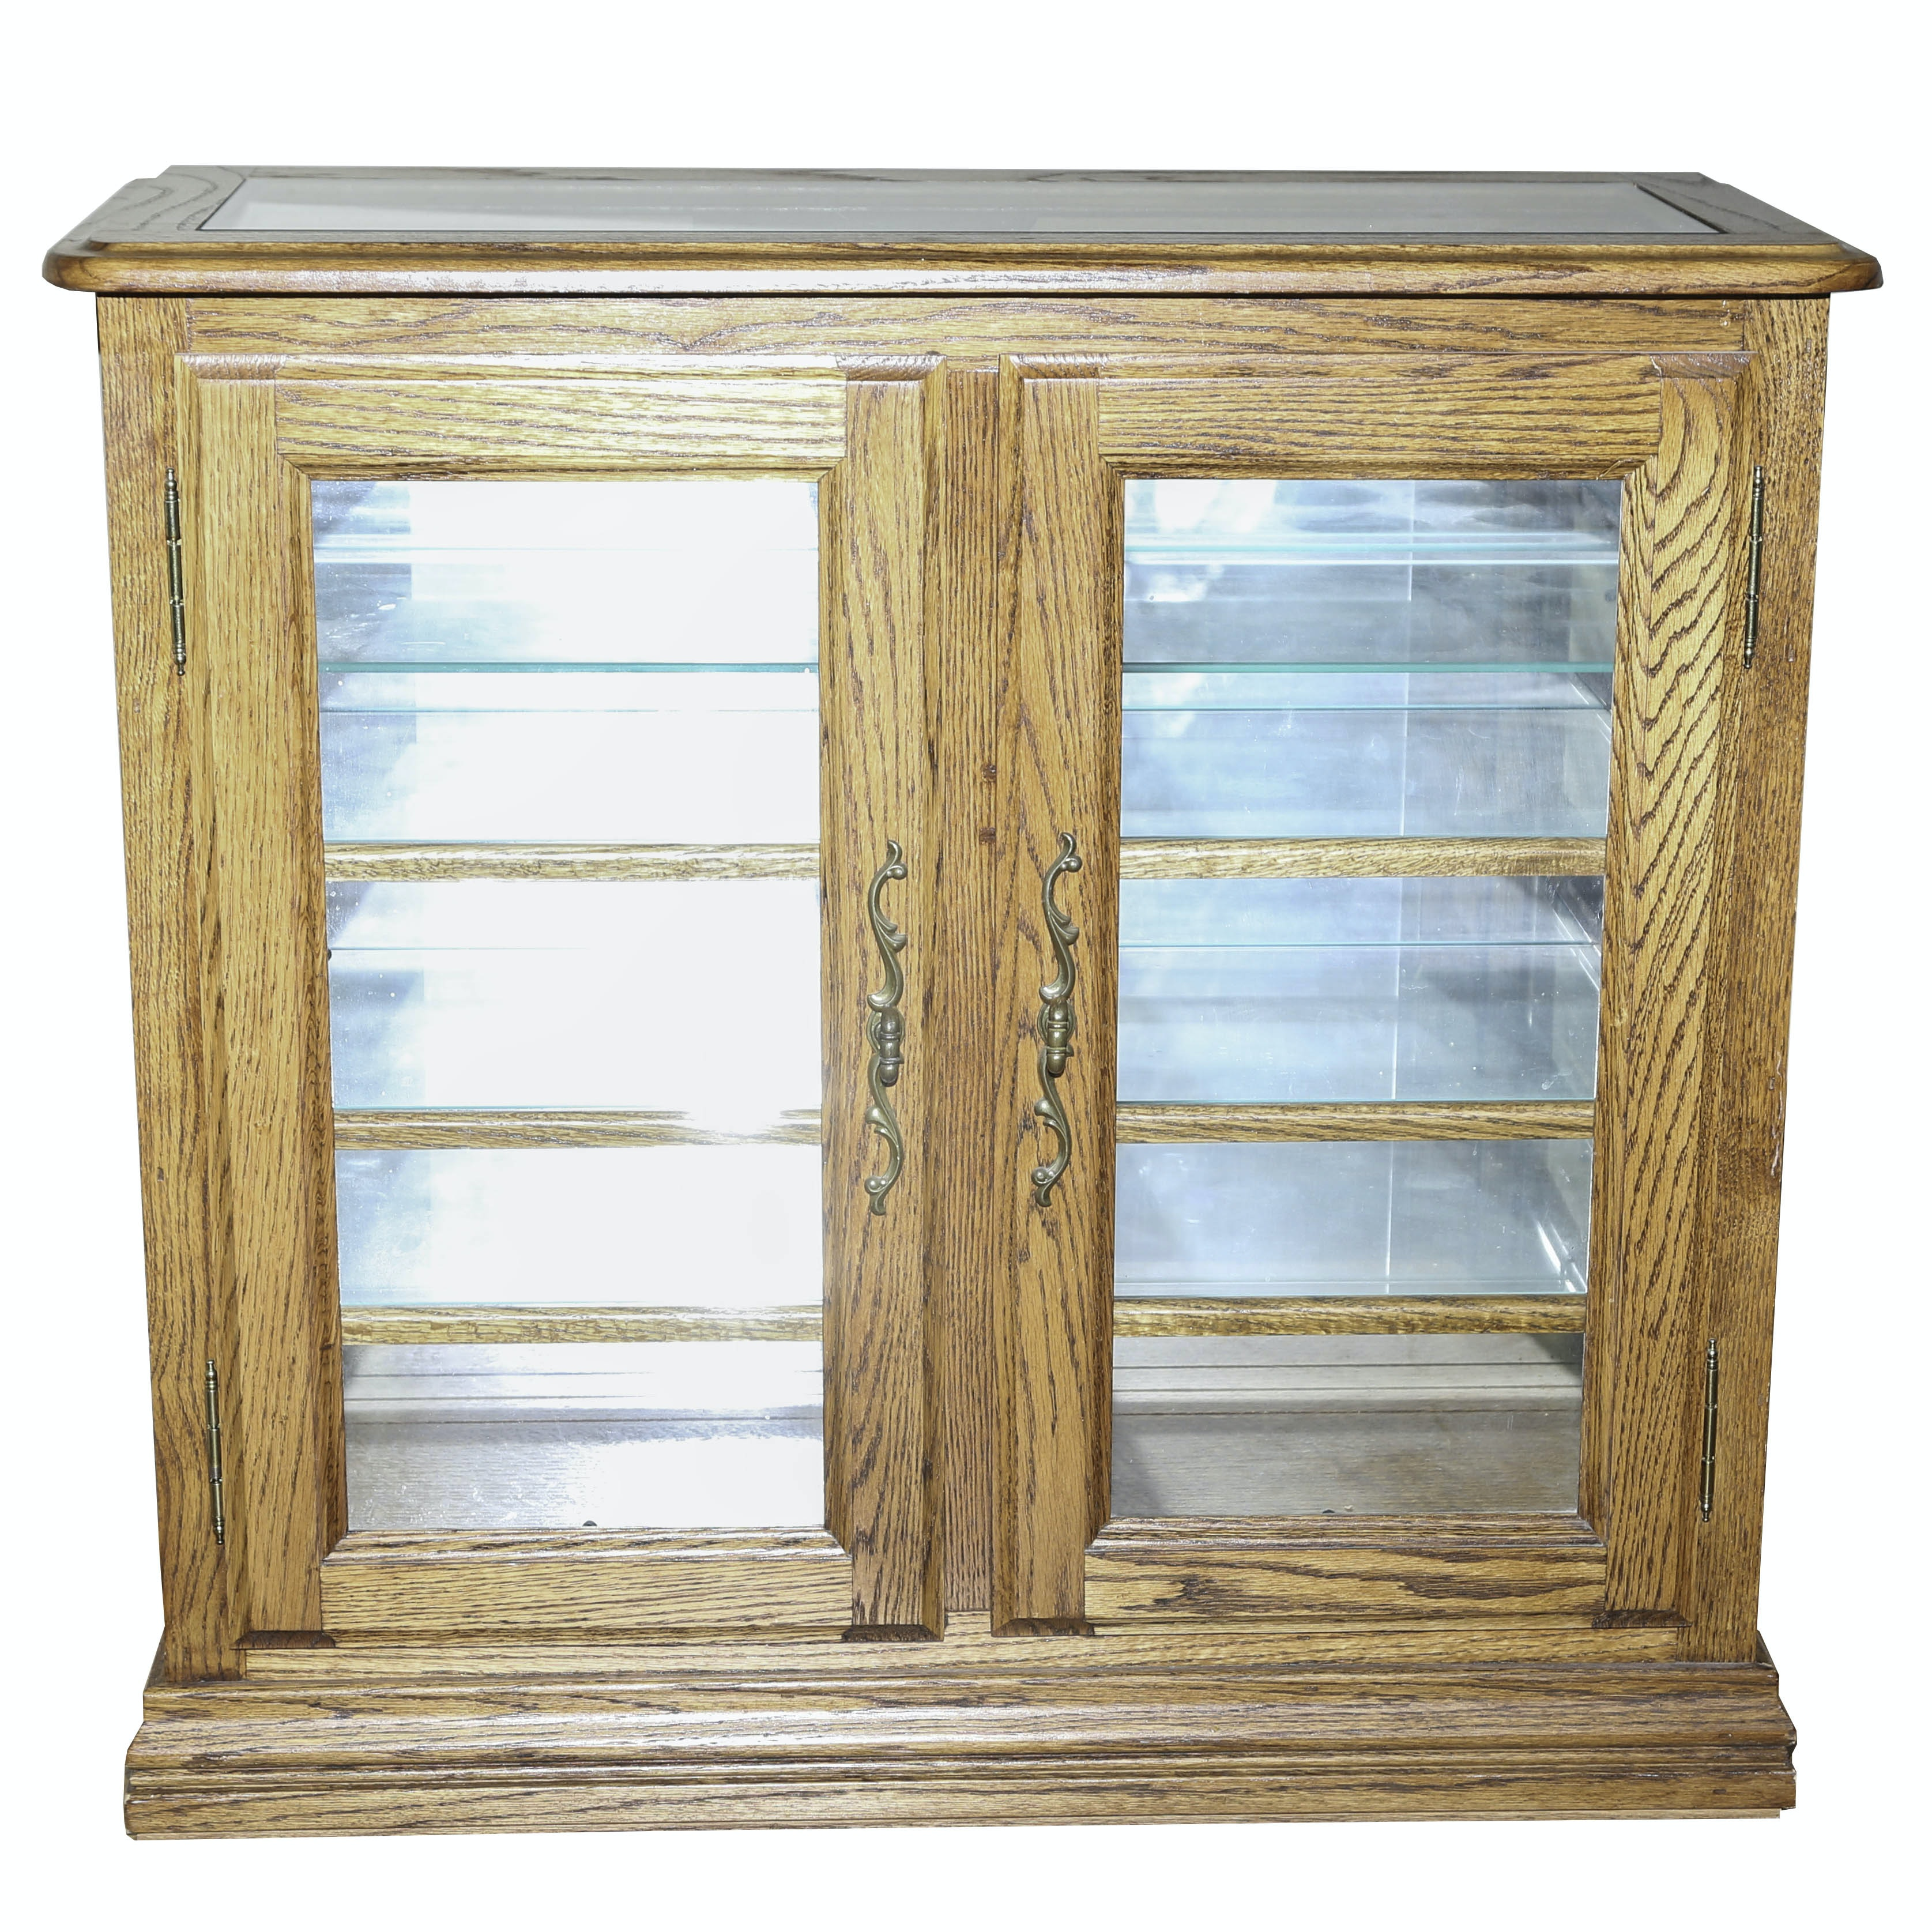 Delicieux Illuminated Low Glass Display Cabinet ...